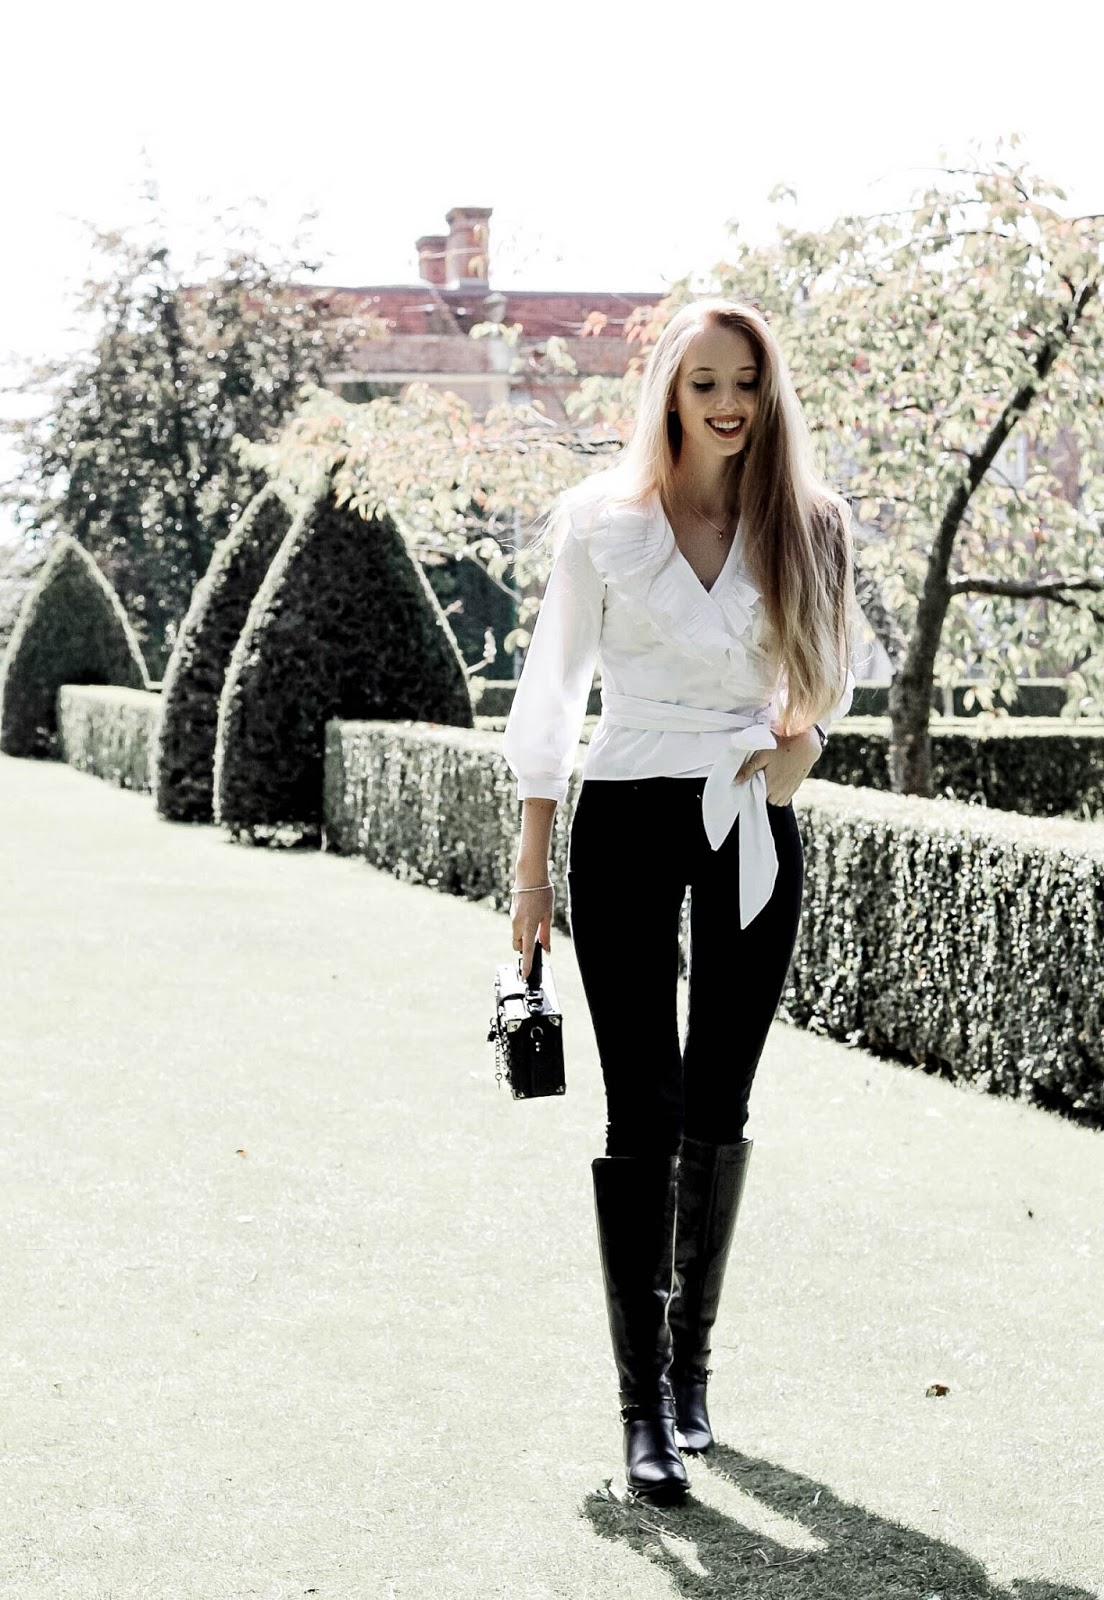 Chic Autumn Styling Black Jeans and White Shirt